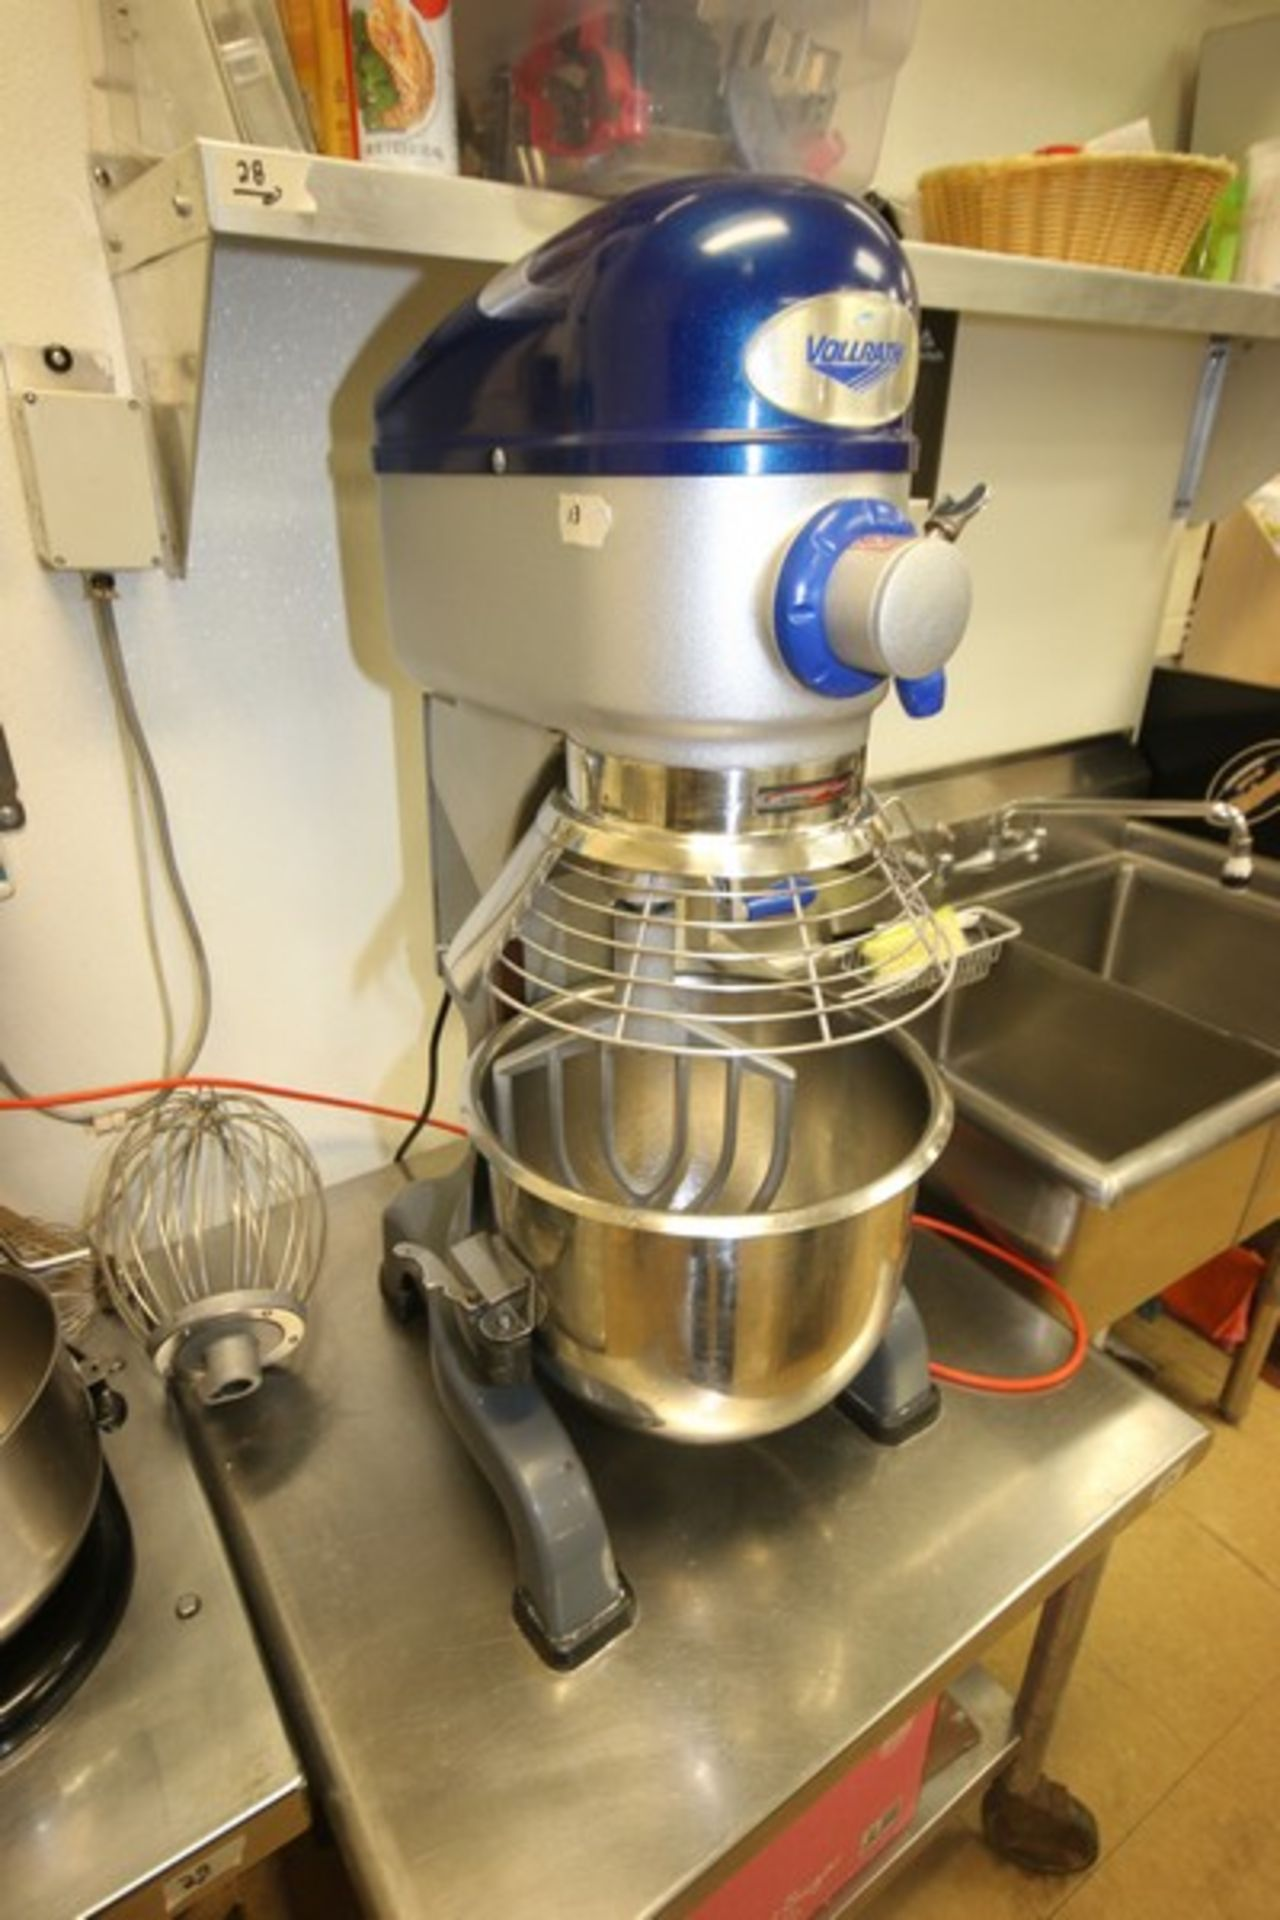 Vollrath Mixer, M/N MIX1020, S/N B42-00181983-0210, with 1/2 hp Motor, 110 Volts, 1 Phase, with S/ - Image 4 of 9